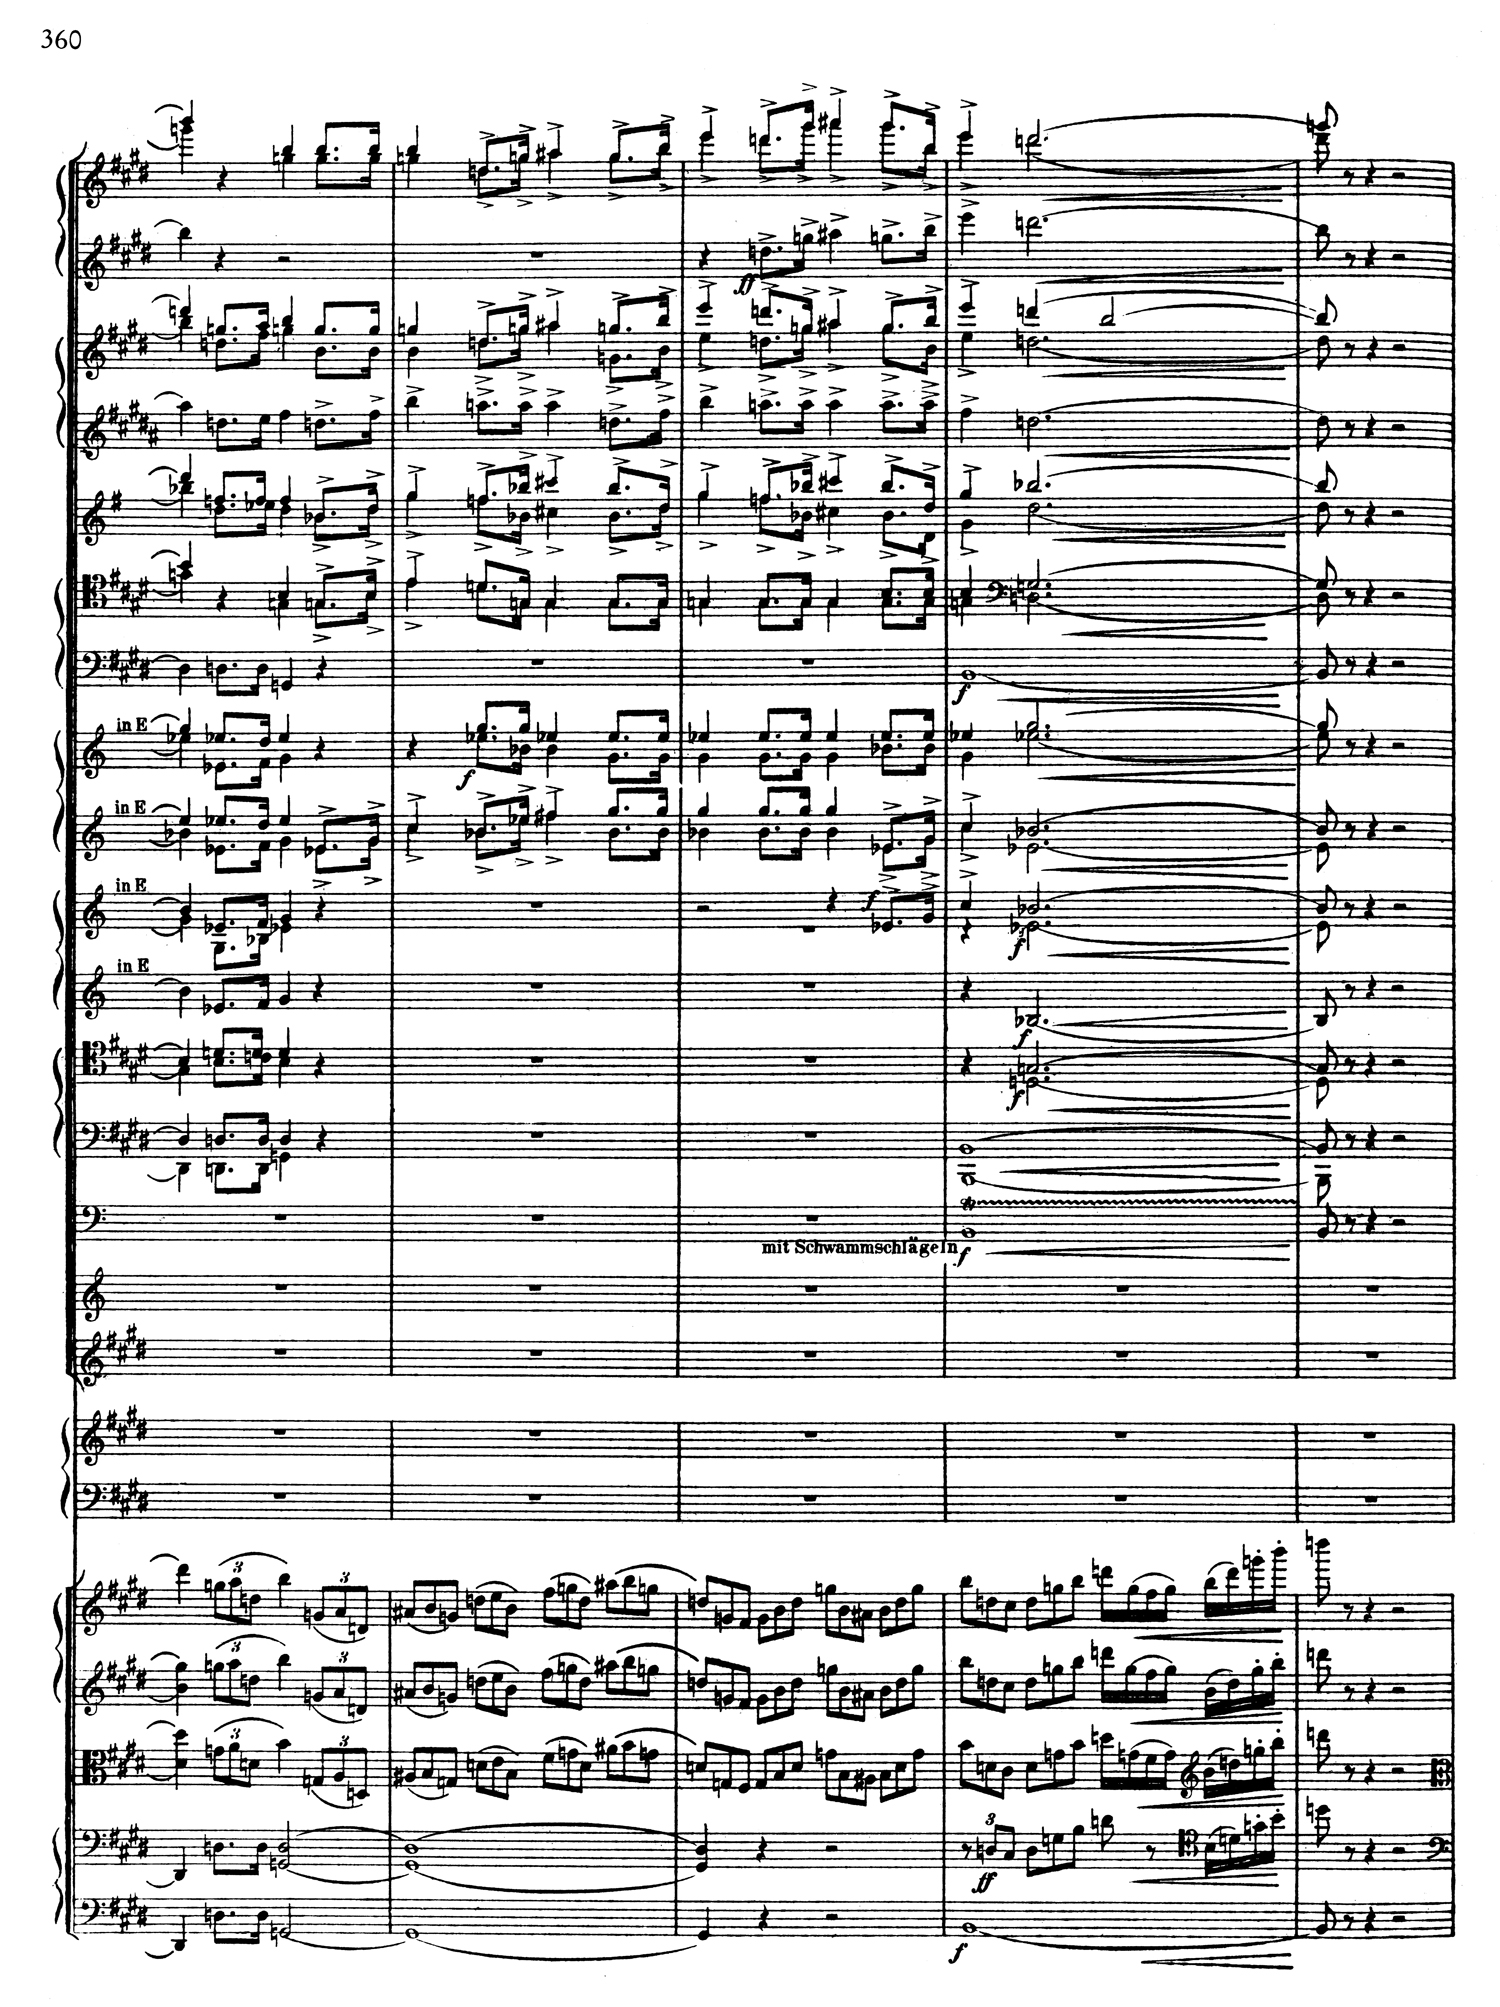 Rehearsal A to bar 10 of Rehearsal A — The Orchestral Bassoon